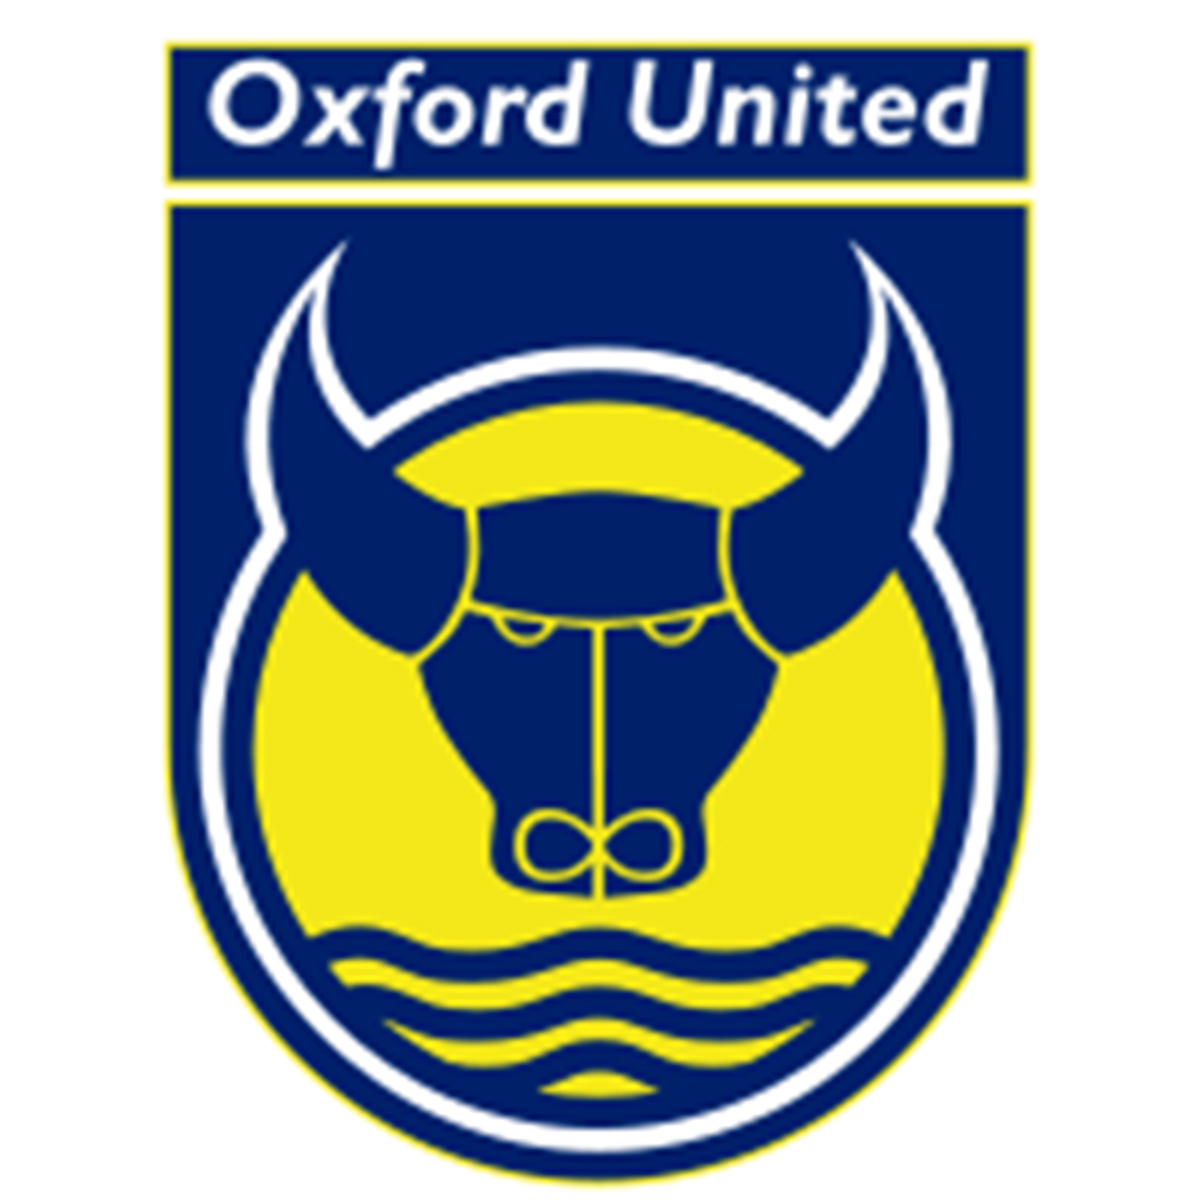 Newport County 0, Oxford Utd 1 (Roofe 30)